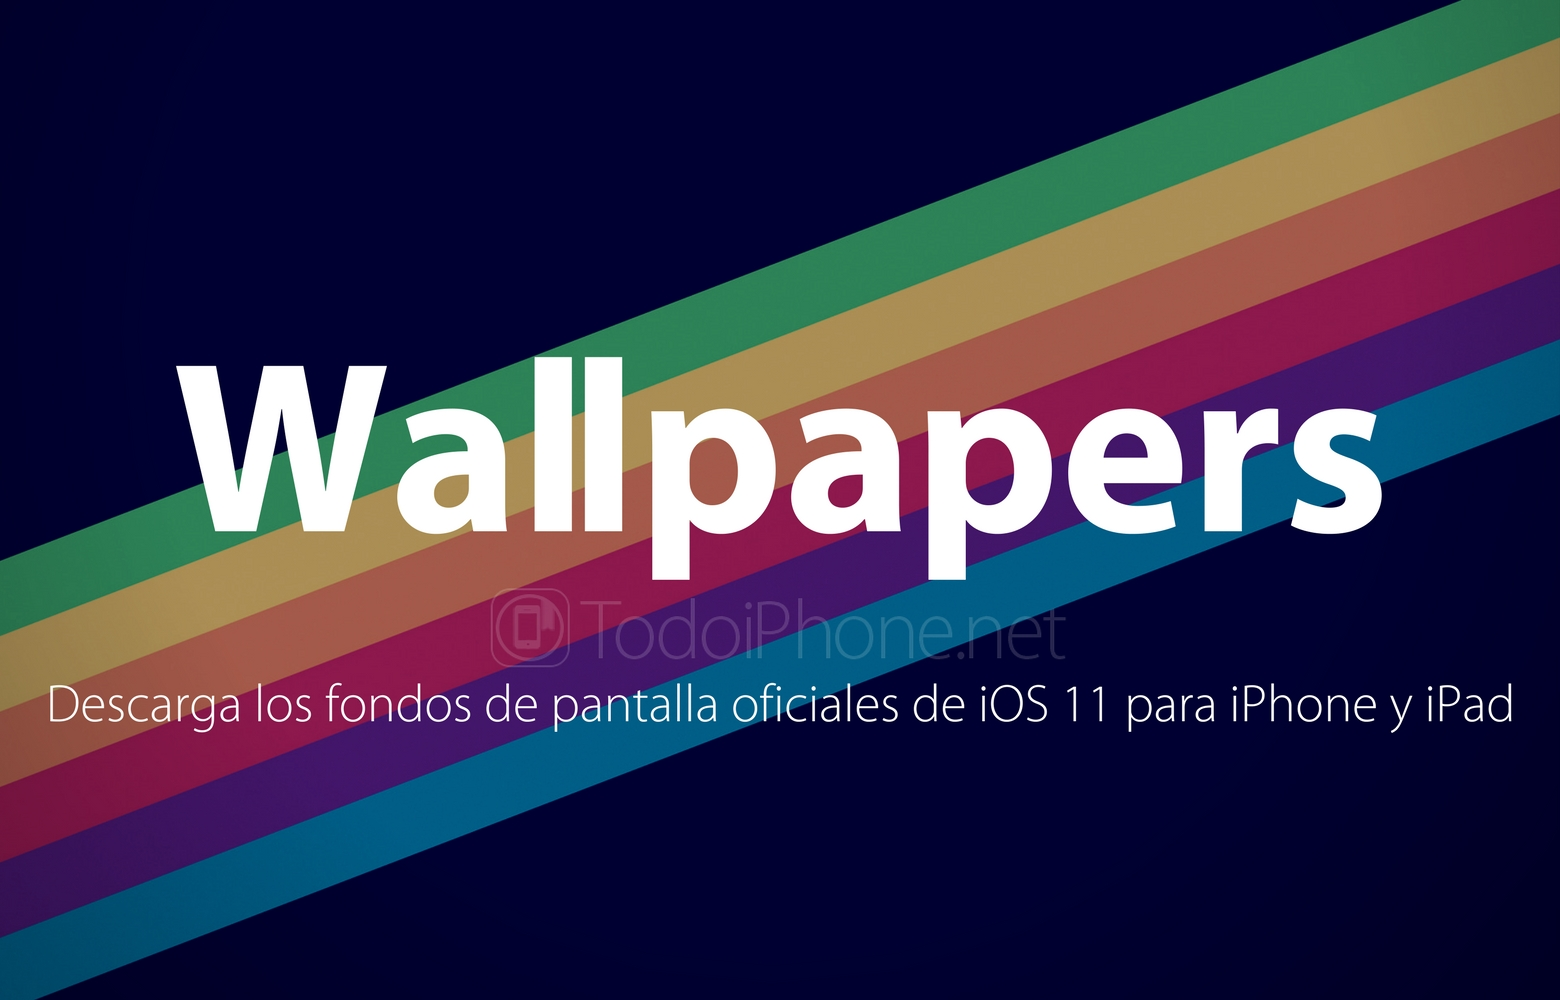 370 Wallpapers Para Iphone: IOS 11: Descarga Los Nuevos Fondos De Pantalla Para IPhone